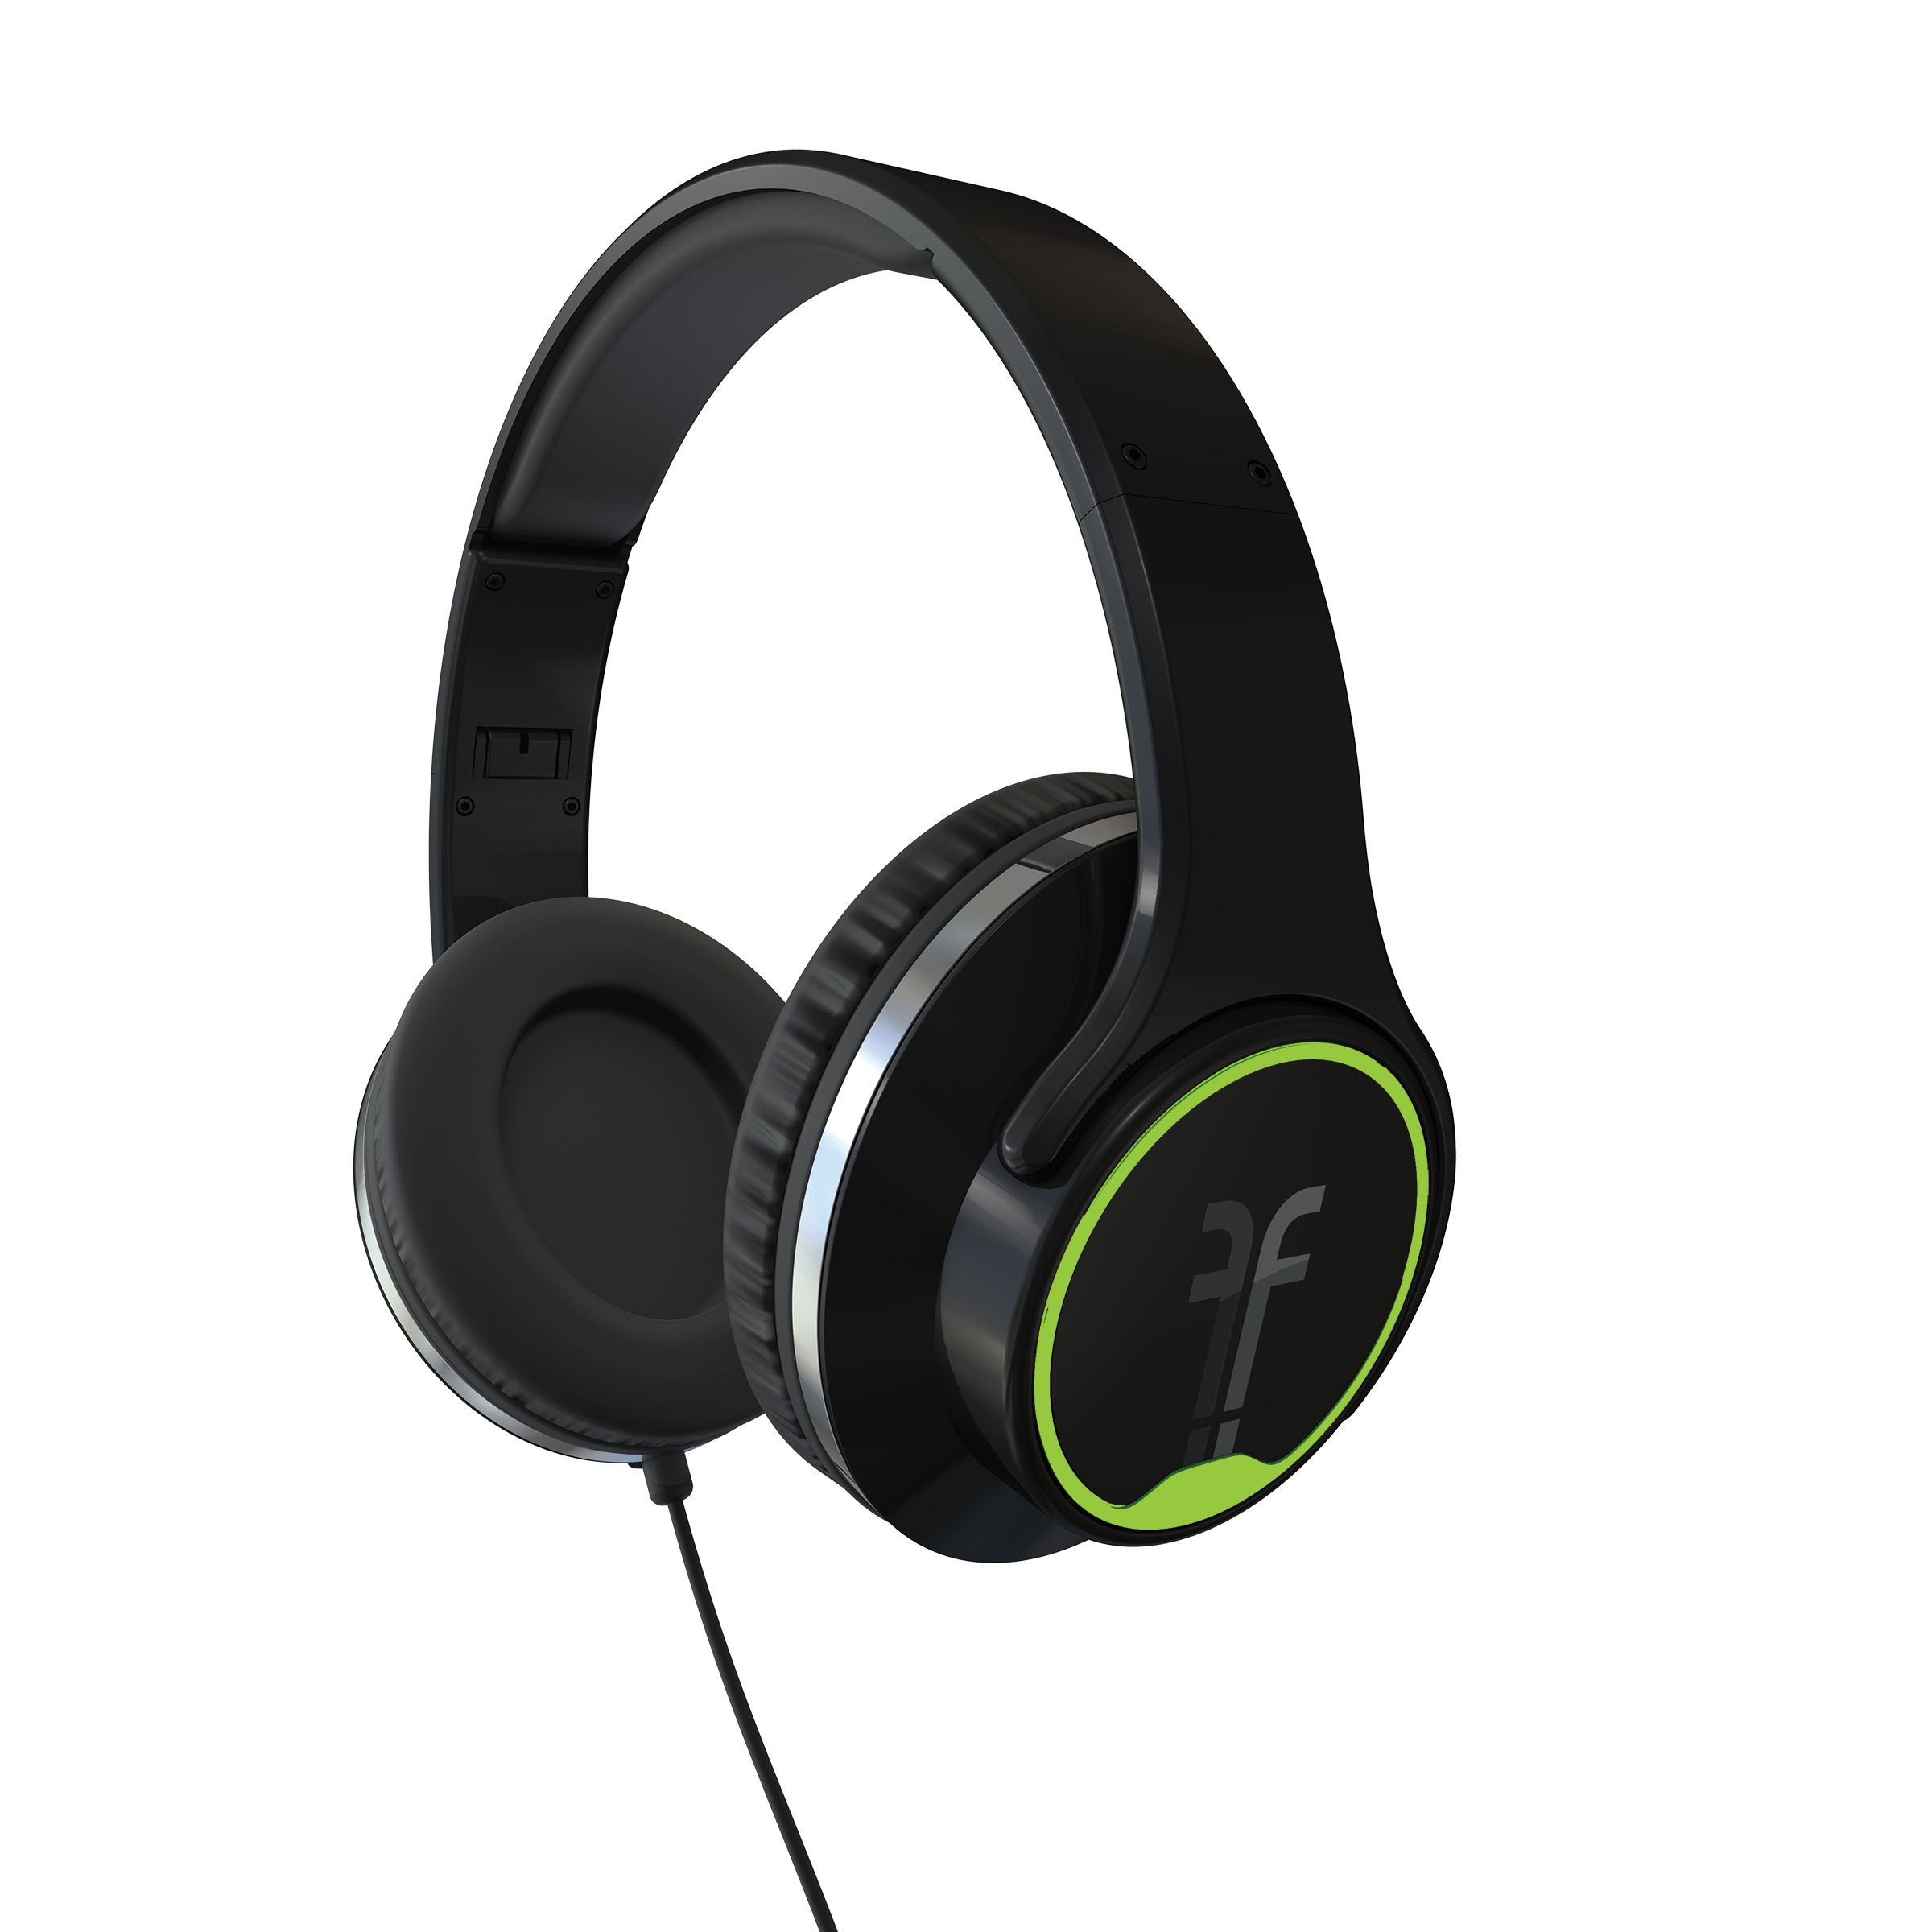 uploads headphones headphones PNG7630 3